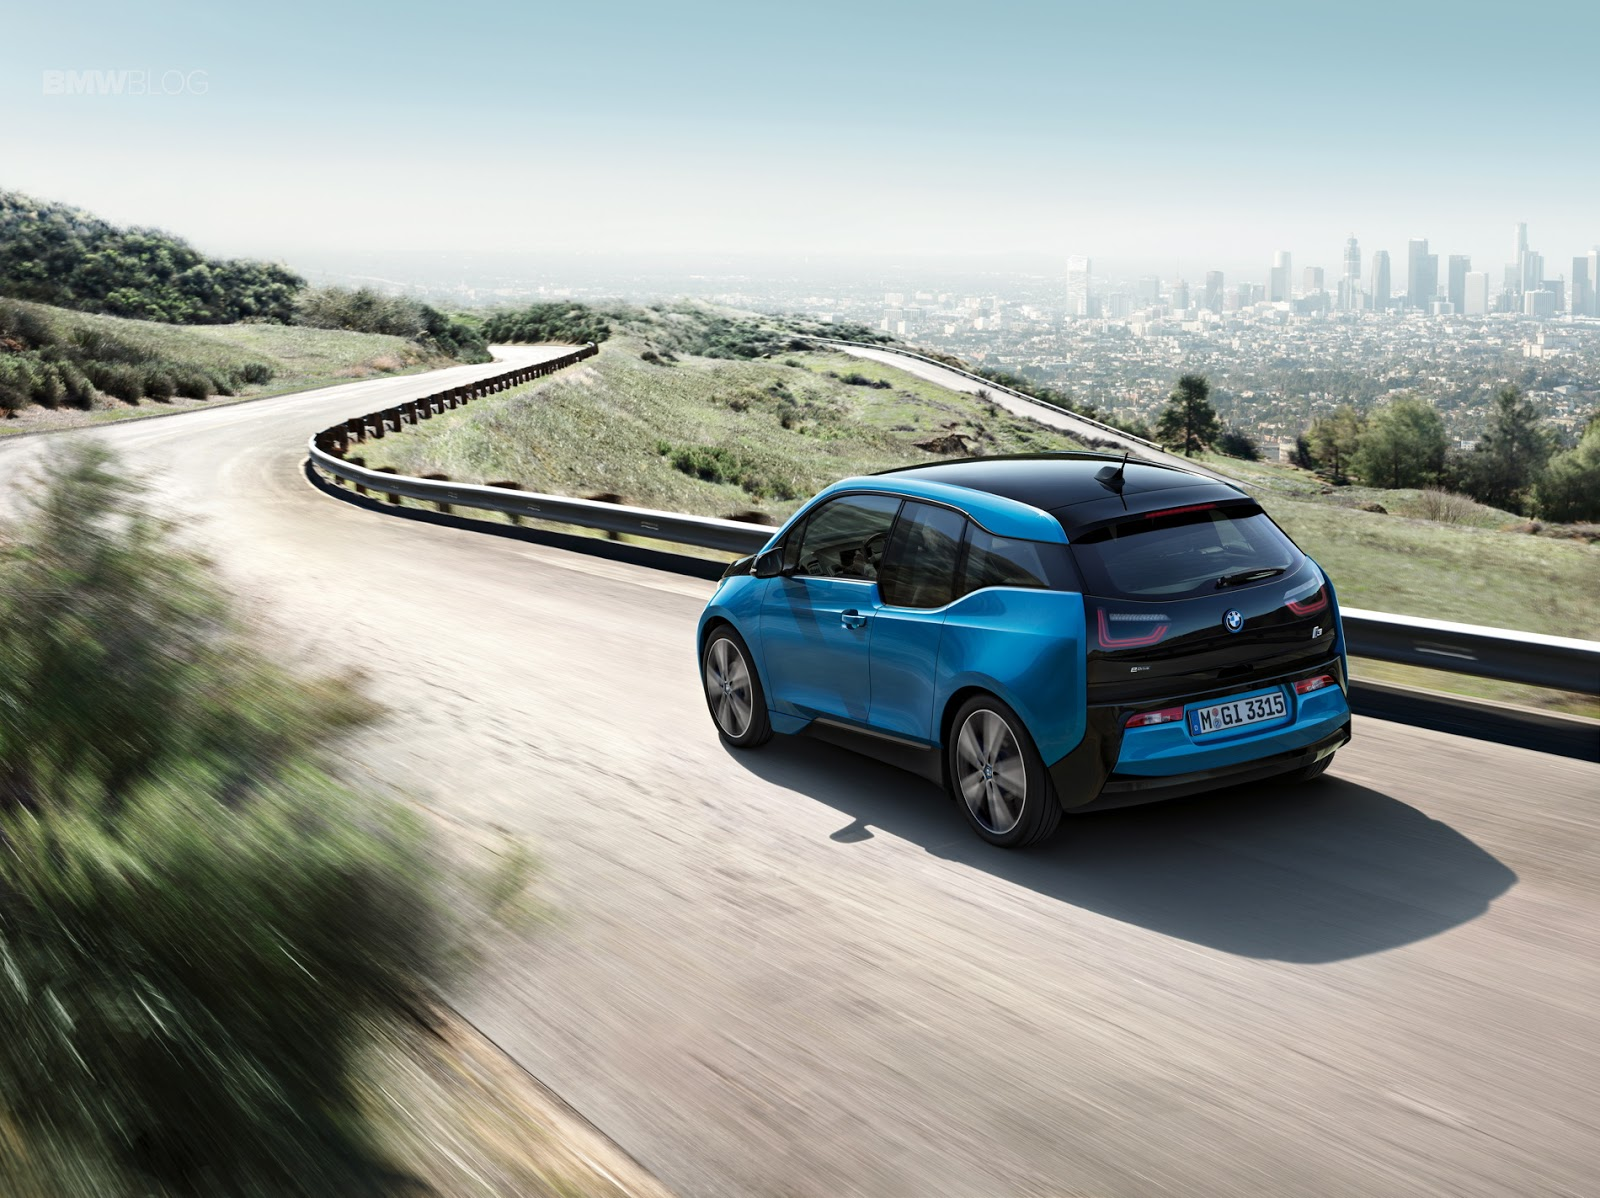 2017 Bmw I3 Goes 180 Km With New 33 Kwh Battery Video Electric